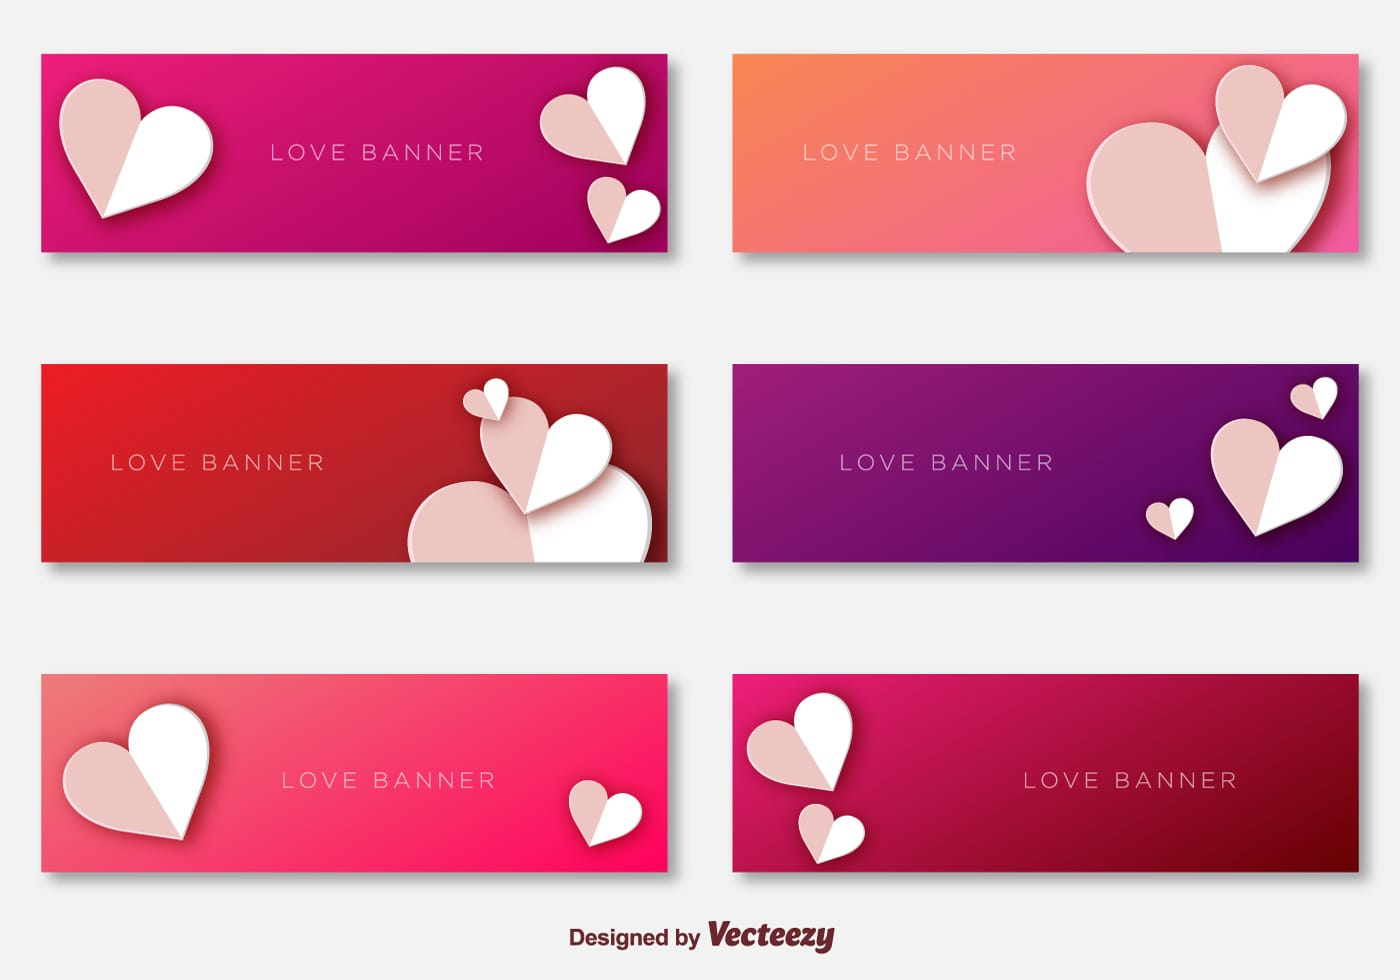 Love Banners Template Vectors  Download Free Vector Art. Banner Printing. Css Banners. Booking Com Banners. Elder Scrolls Banners. Maine Stickers. Race Track Wall Murals. Application Software Logo. Major Signs Of Stroke